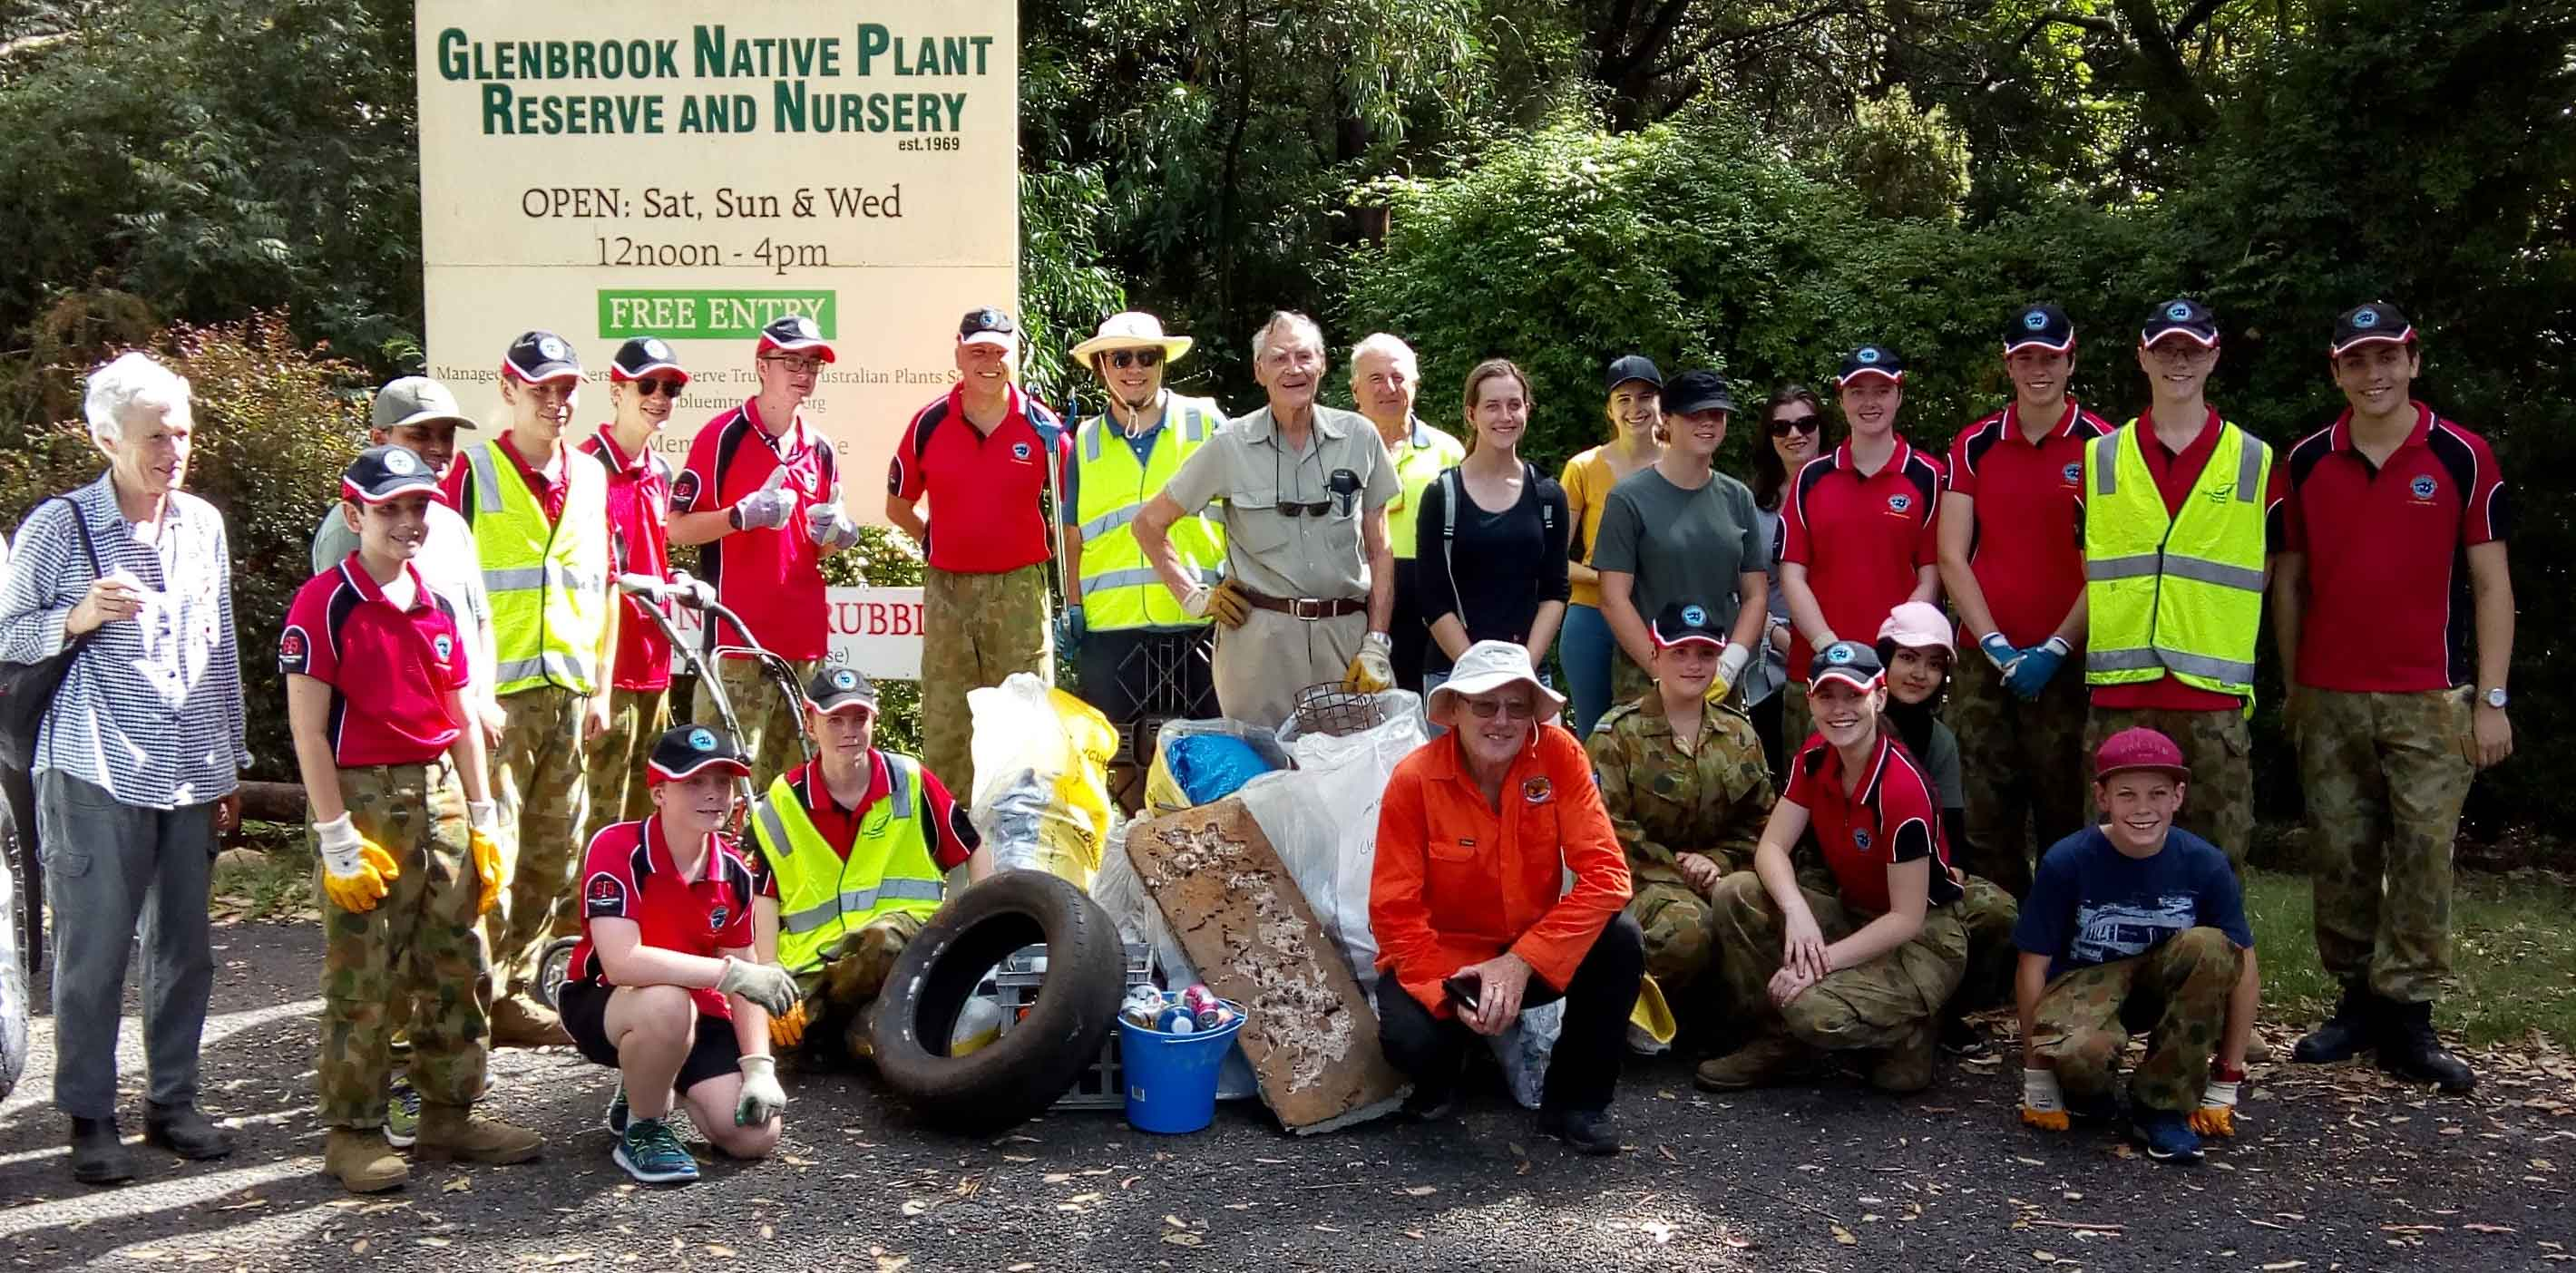 Glenbrook Native Plants Society participated in Clean Up Australia Day 2019 with Air Cadets and volunteers from the area.